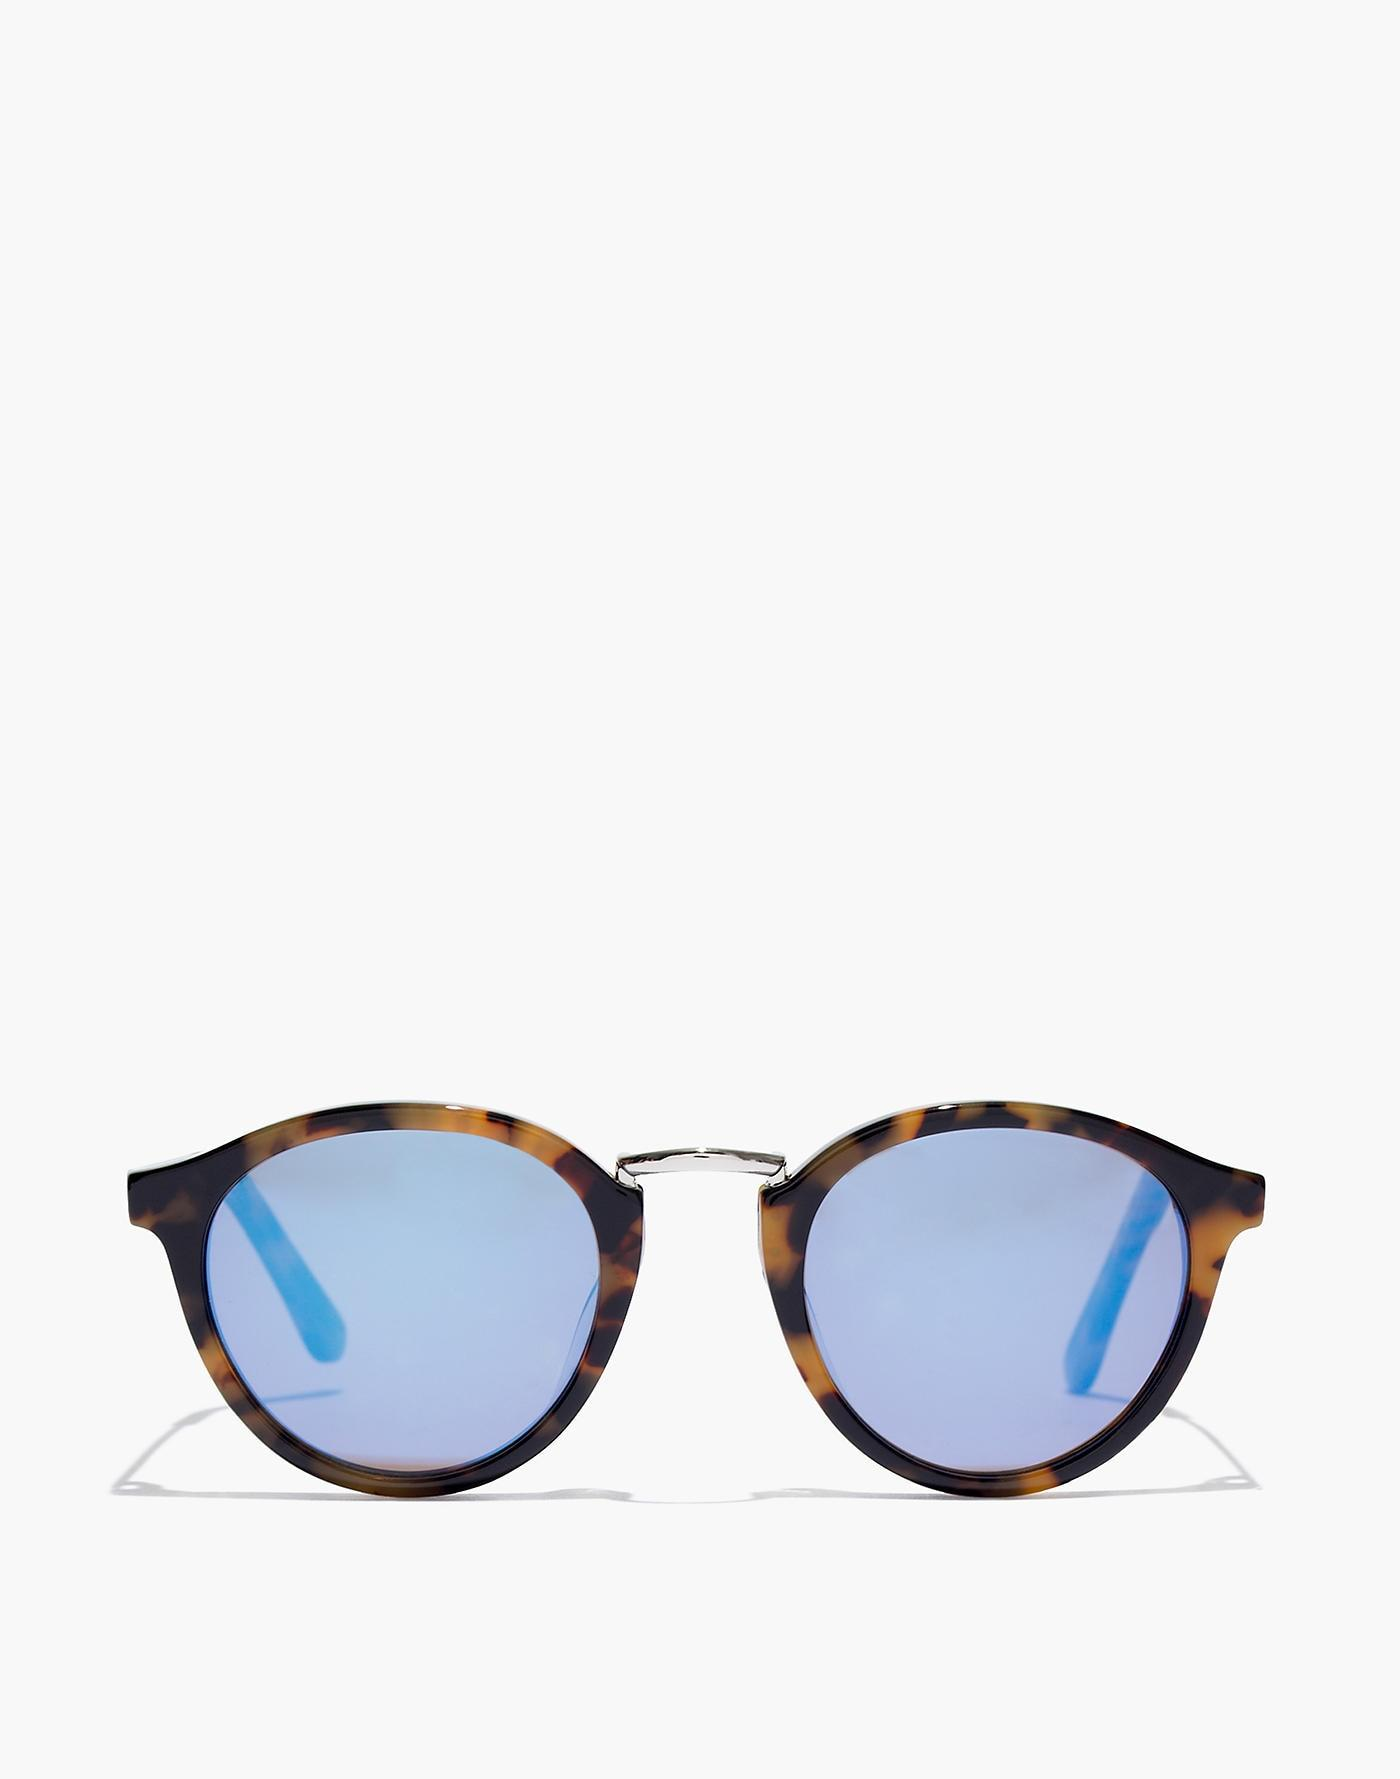 f9a12dcbd821 Madewell Indio Sunglasses in Brown - Lyst